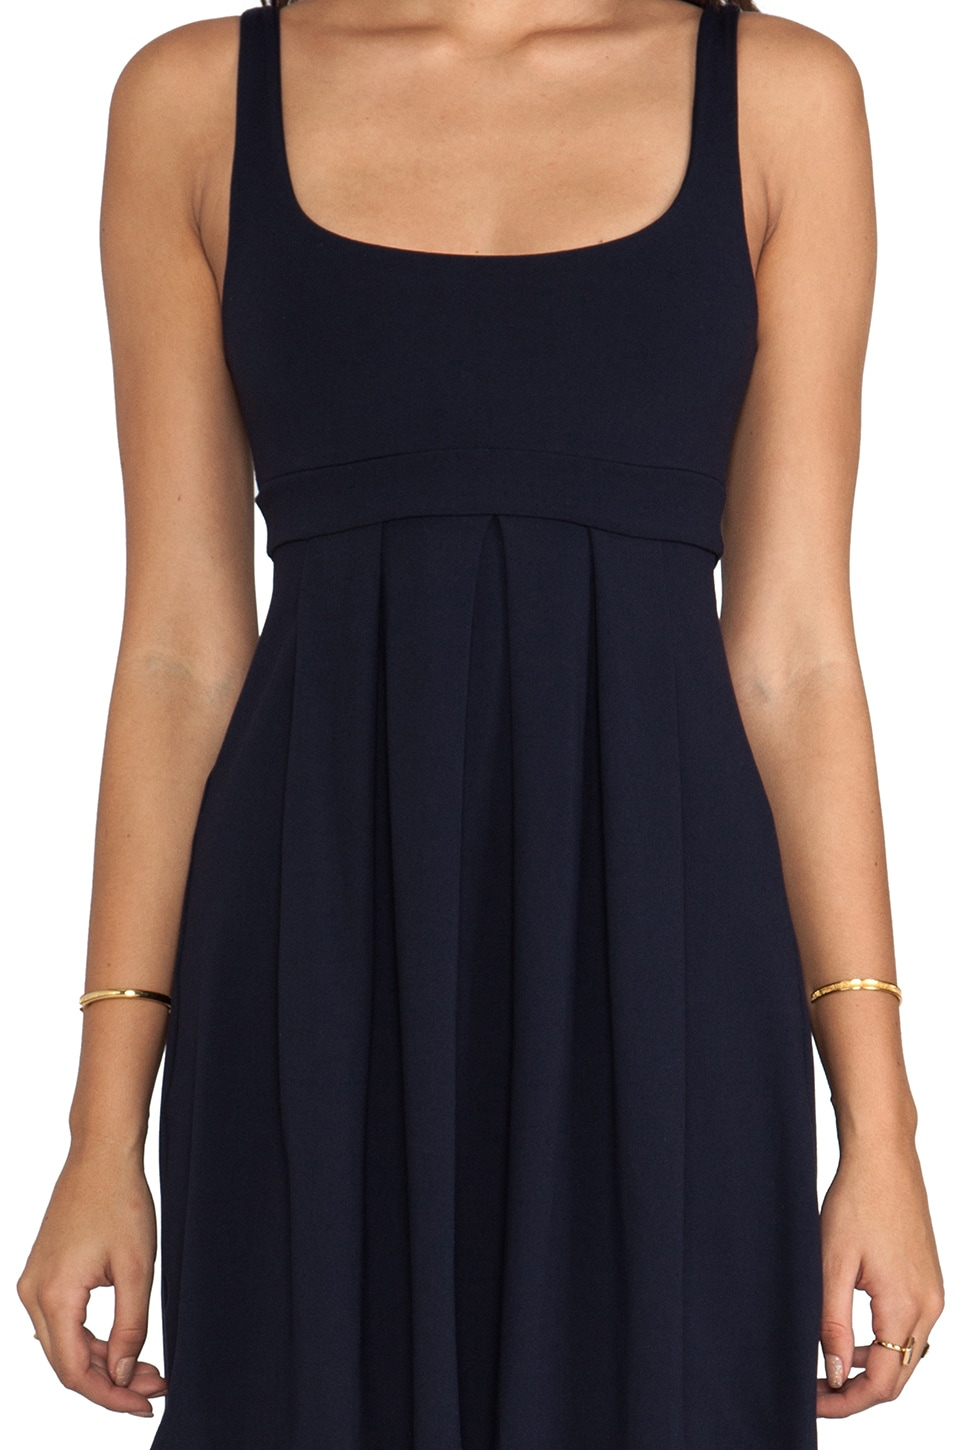 "Susana Monaco Tank Pleat 19"" Dress in Midnight"